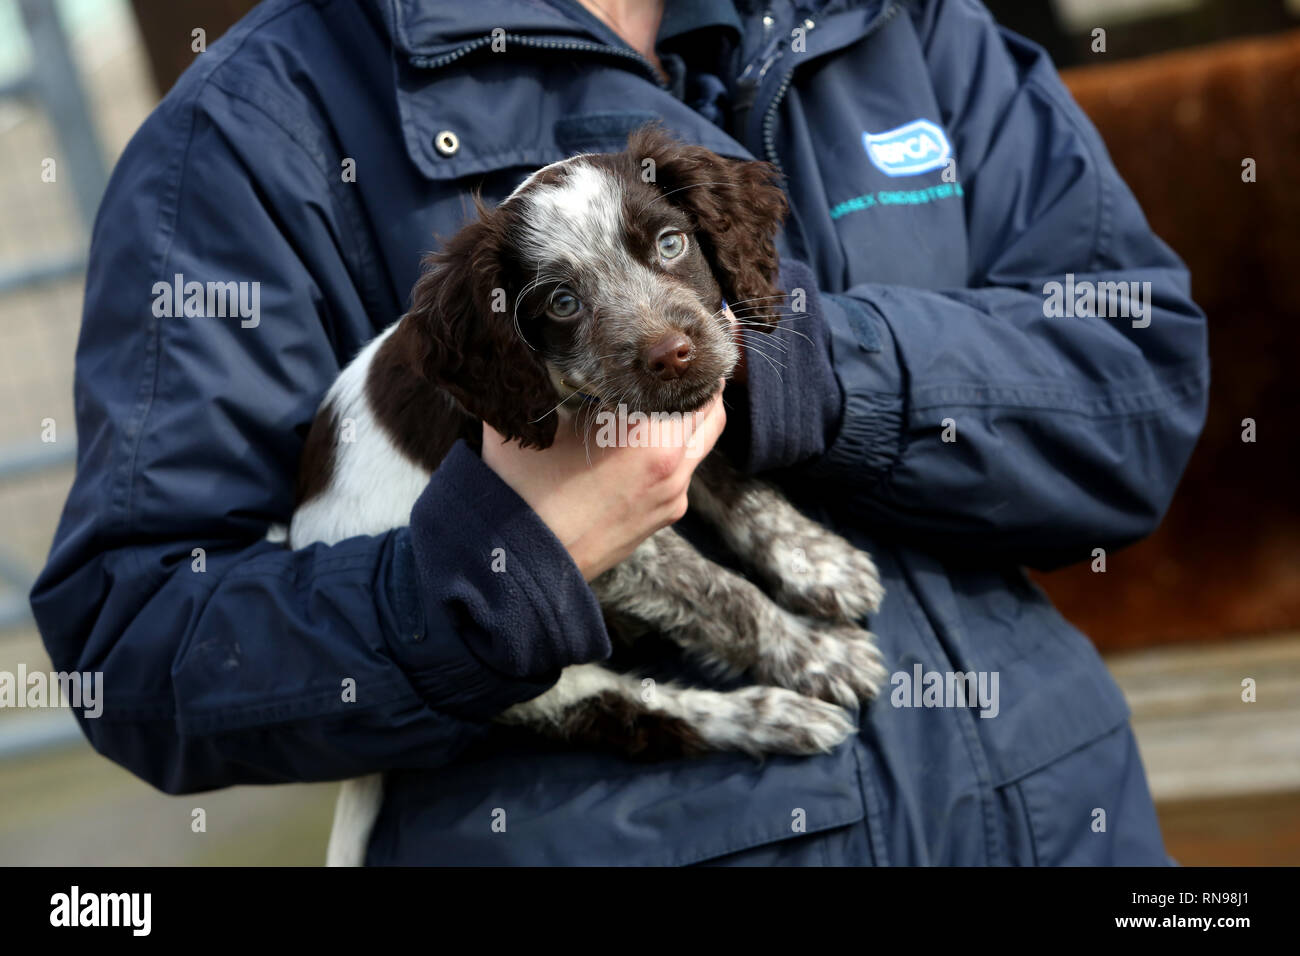 RSPCA staff working with dogs at the Mount Noddy Animal Centre in West Sussex, UK. - Stock Image